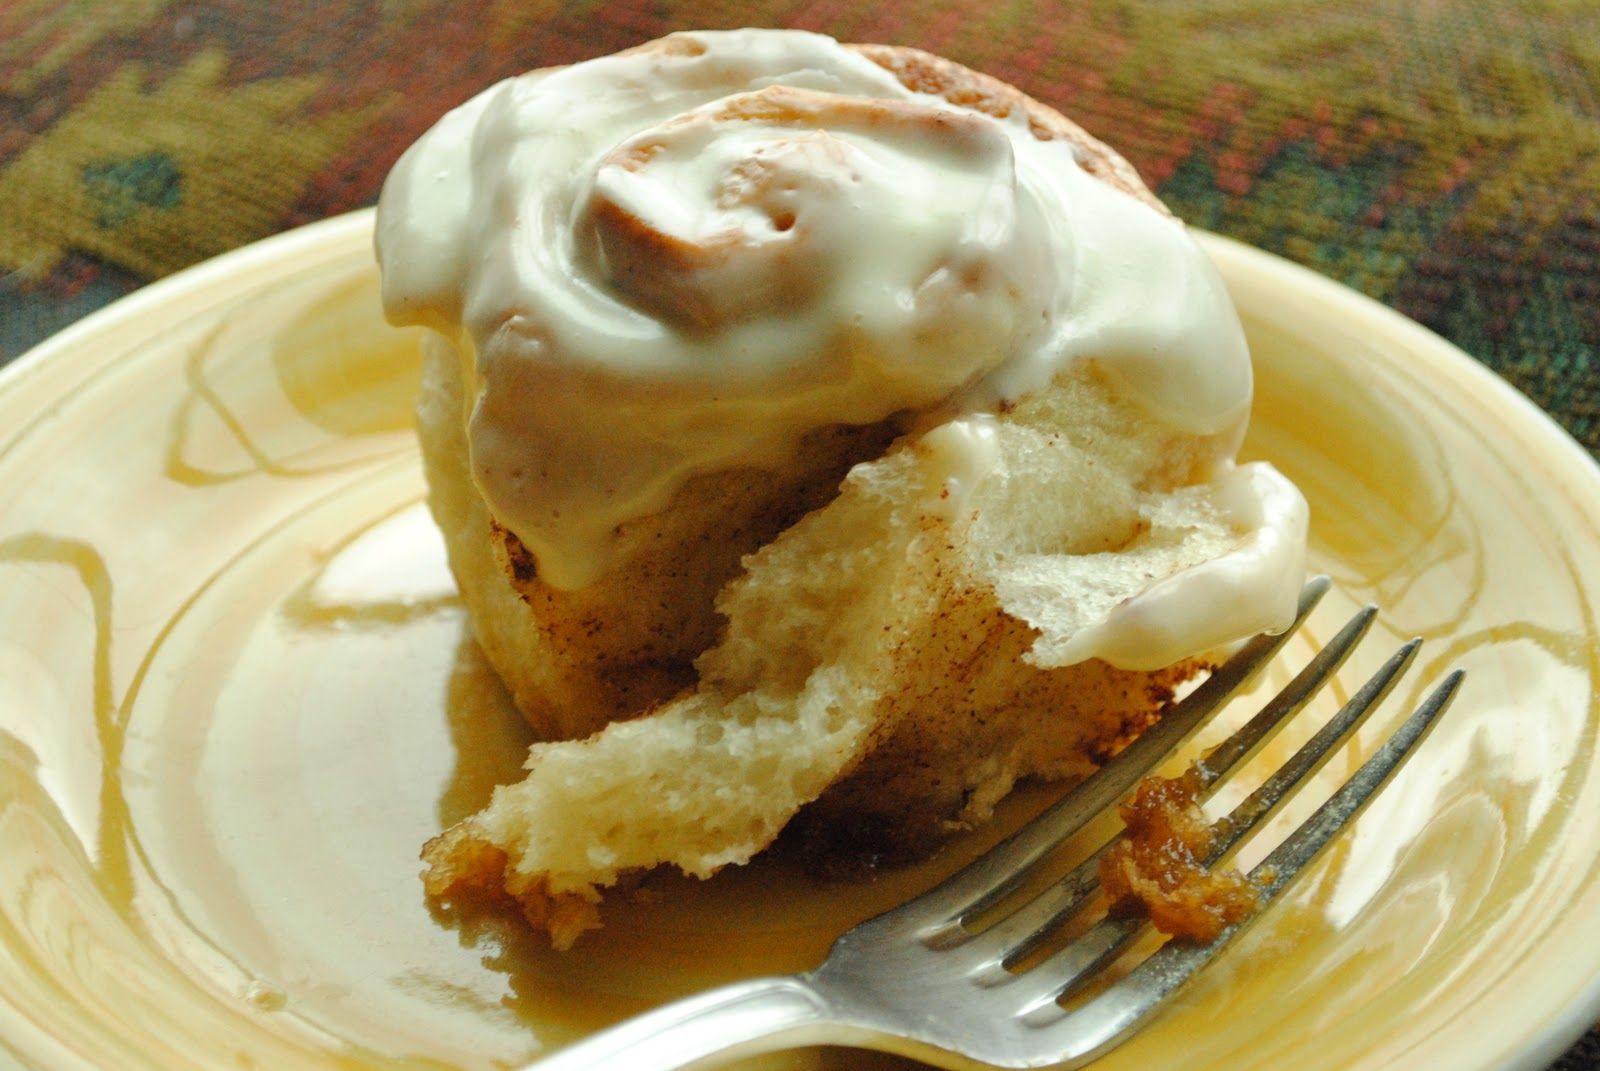 Cooke's Frontier: Refrigerator Cinnamon Rolls with Cream Cheese Icing